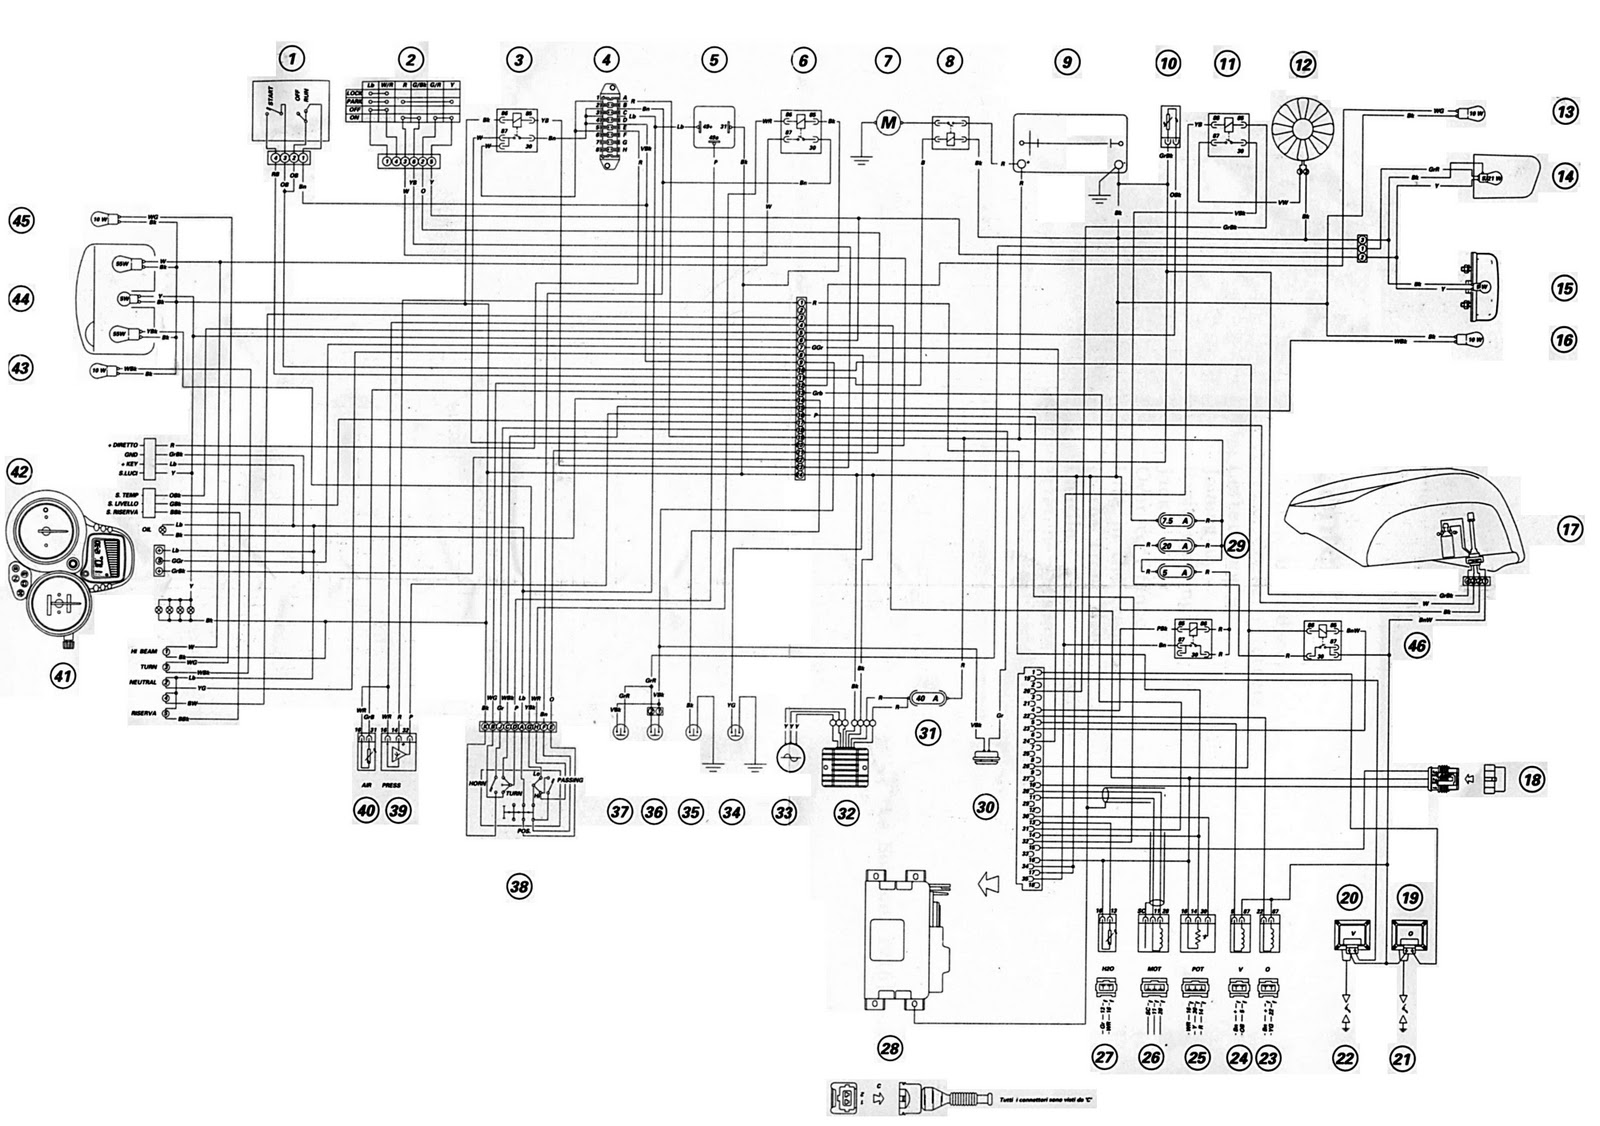 ducati s4r wiring diagram wiring diagram review ducati monster 600 electrical wiring diagram [ 1600 x 1126 Pixel ]